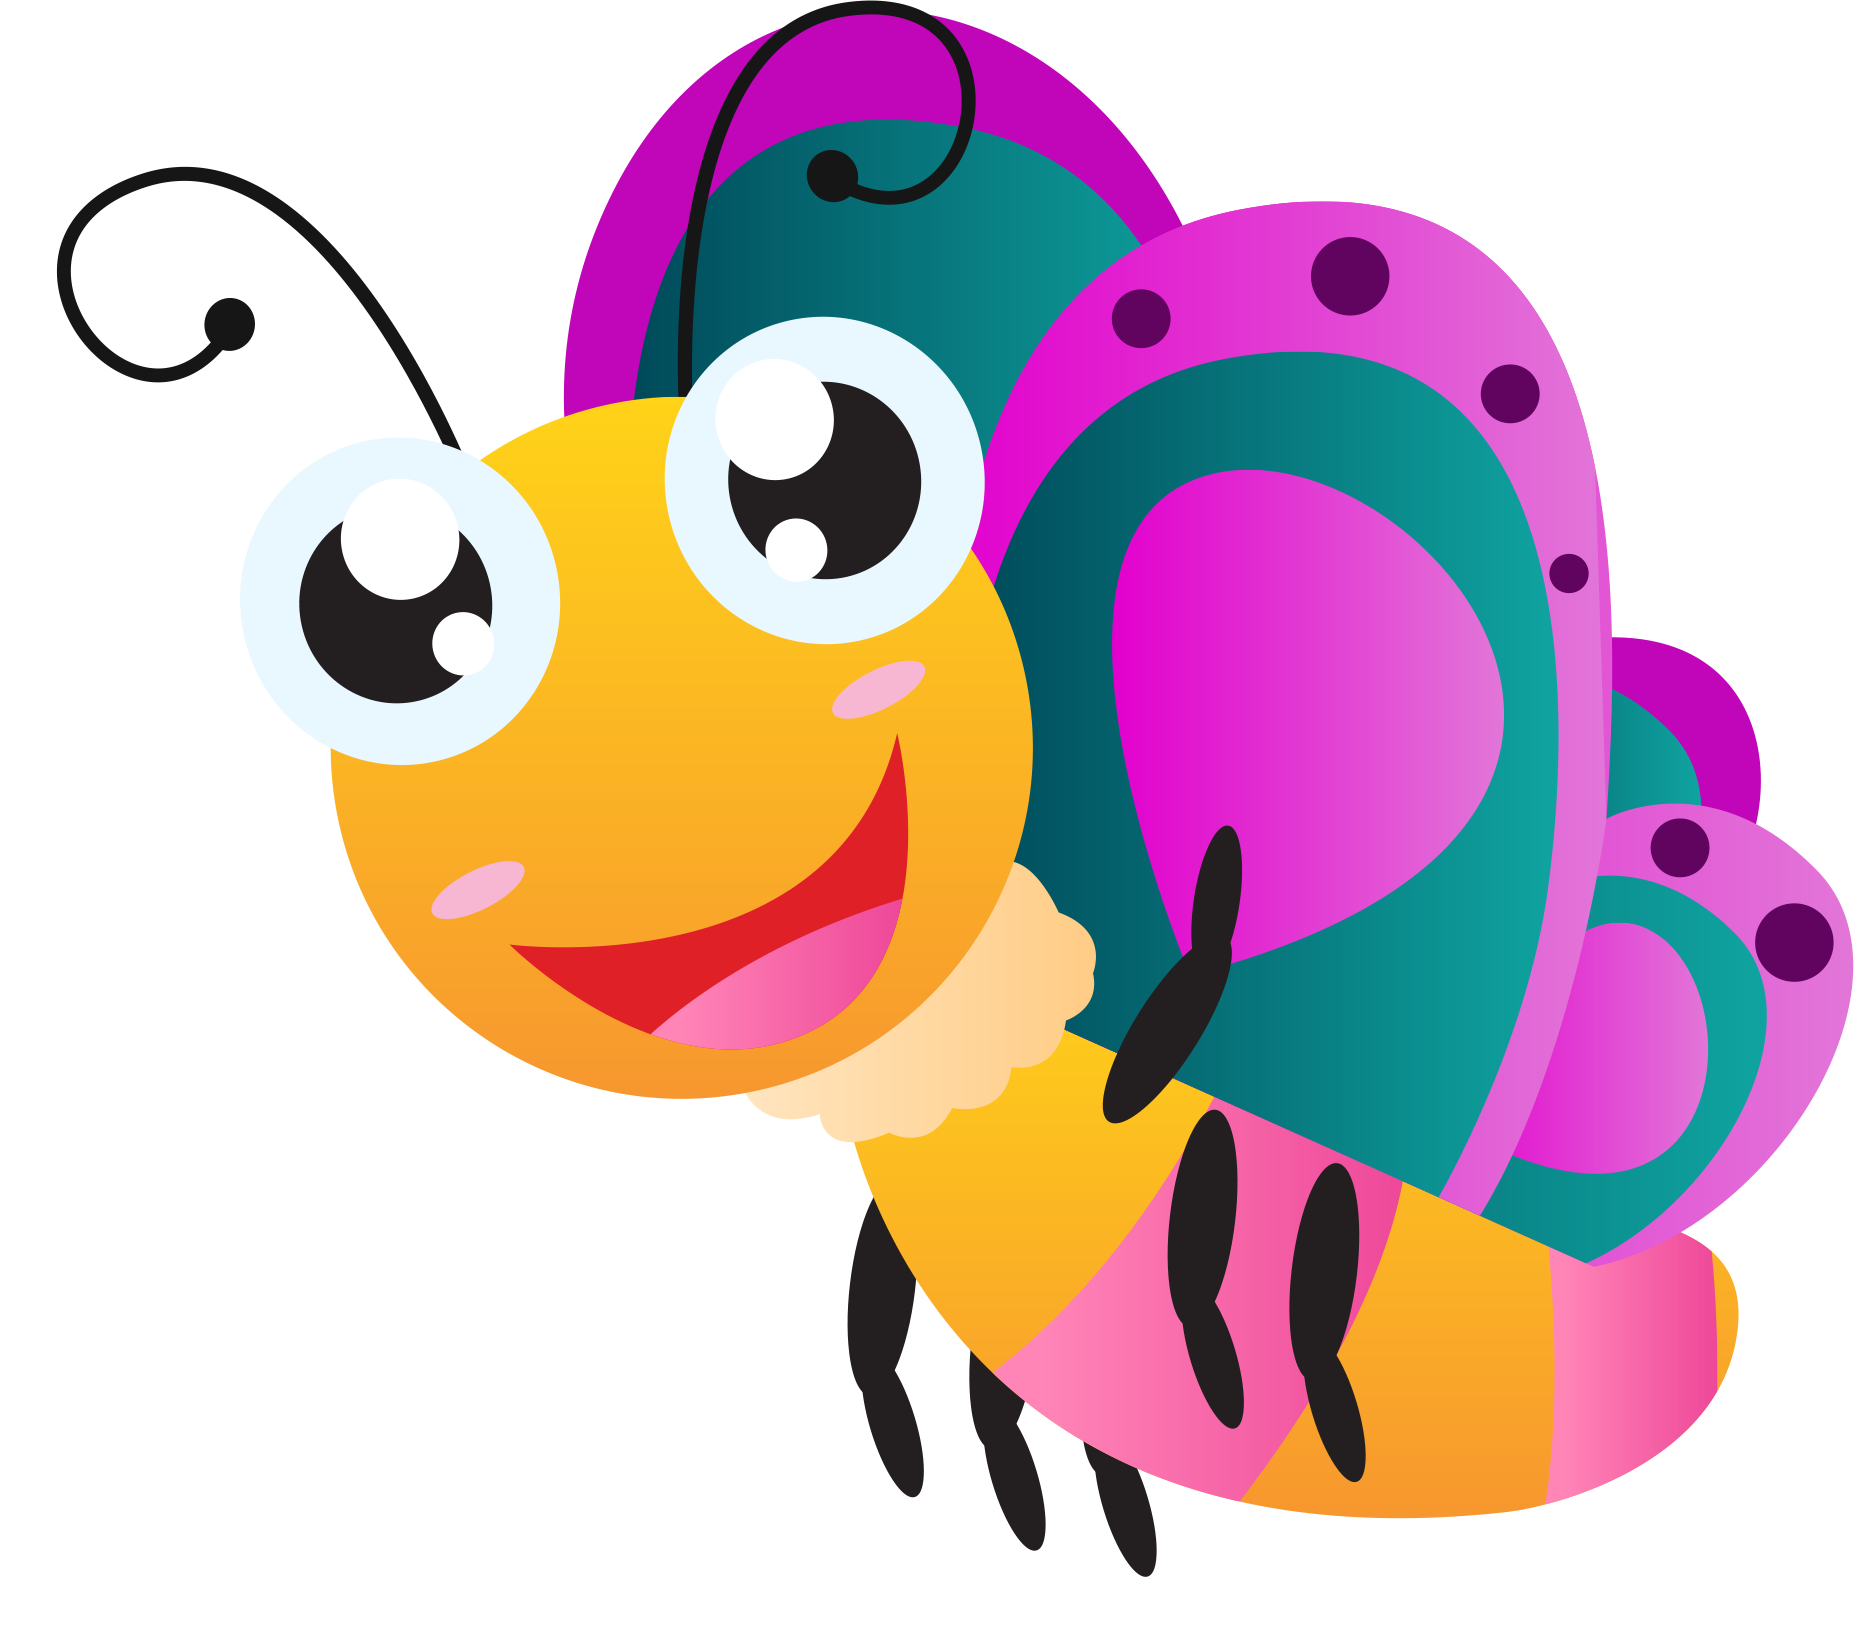 Smiley clipart butterfly. Cartoon drawing clip art